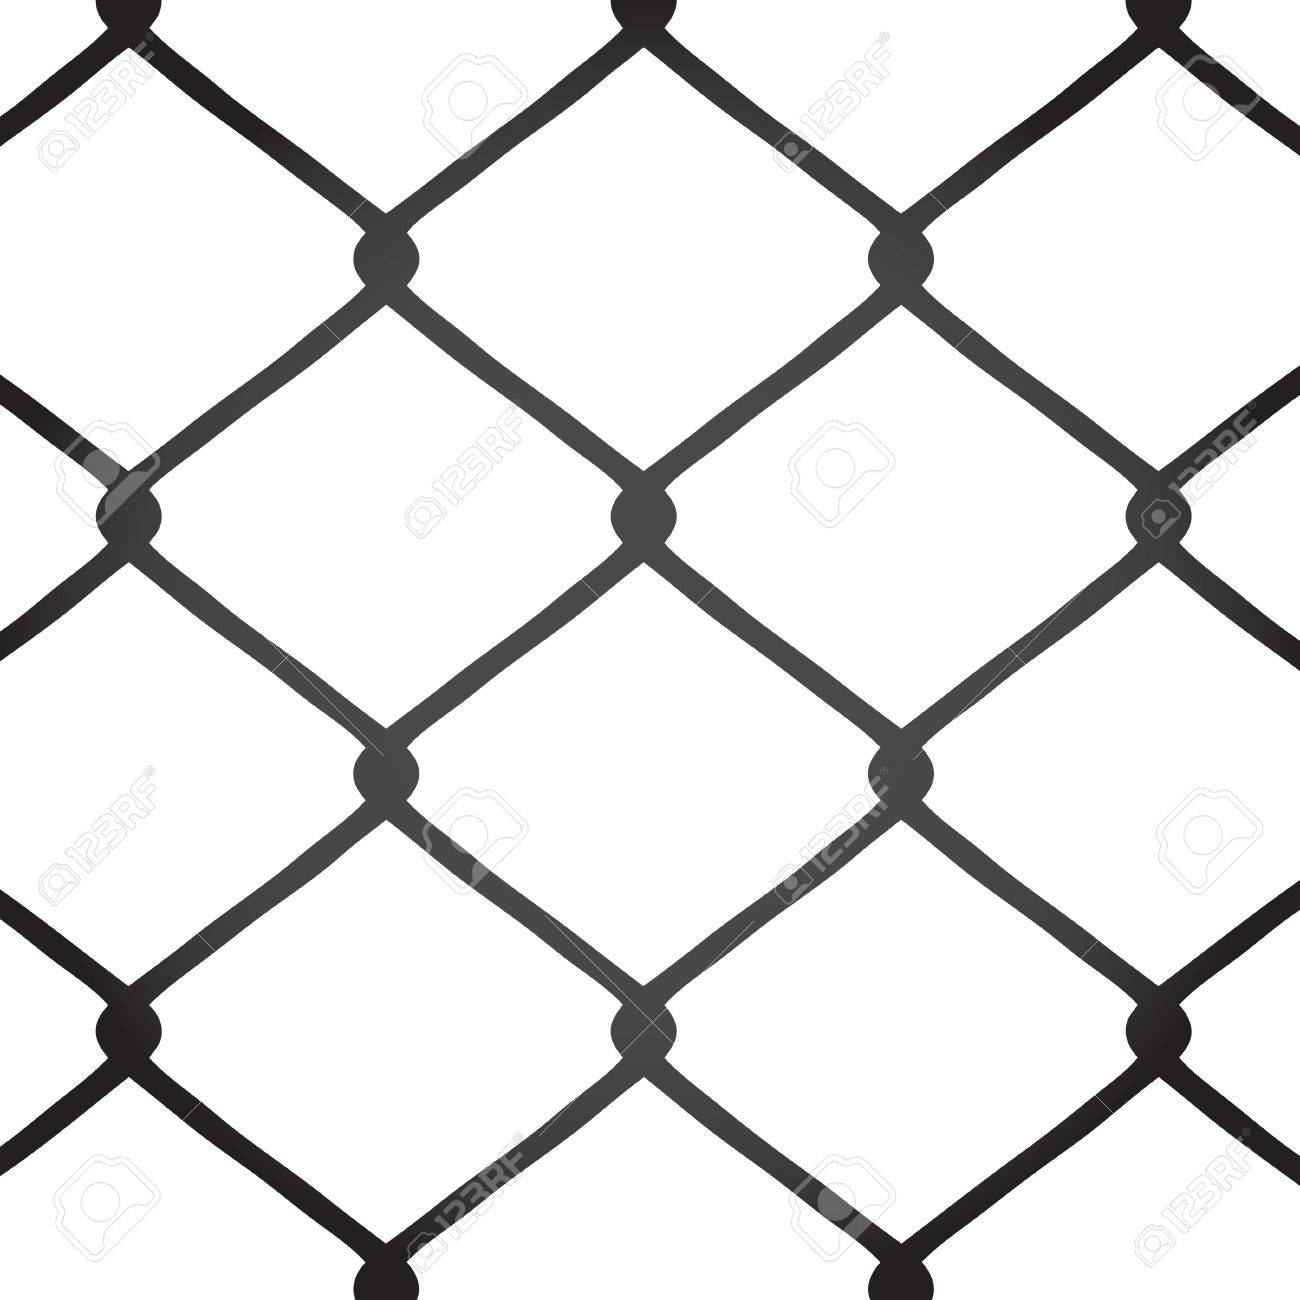 Chain Link Fence Vector With Chain Link Fence Texture This Vector Image Is Fully Customizable Stock Vector Chain Link Fence Texture Image Is Fully Customizable